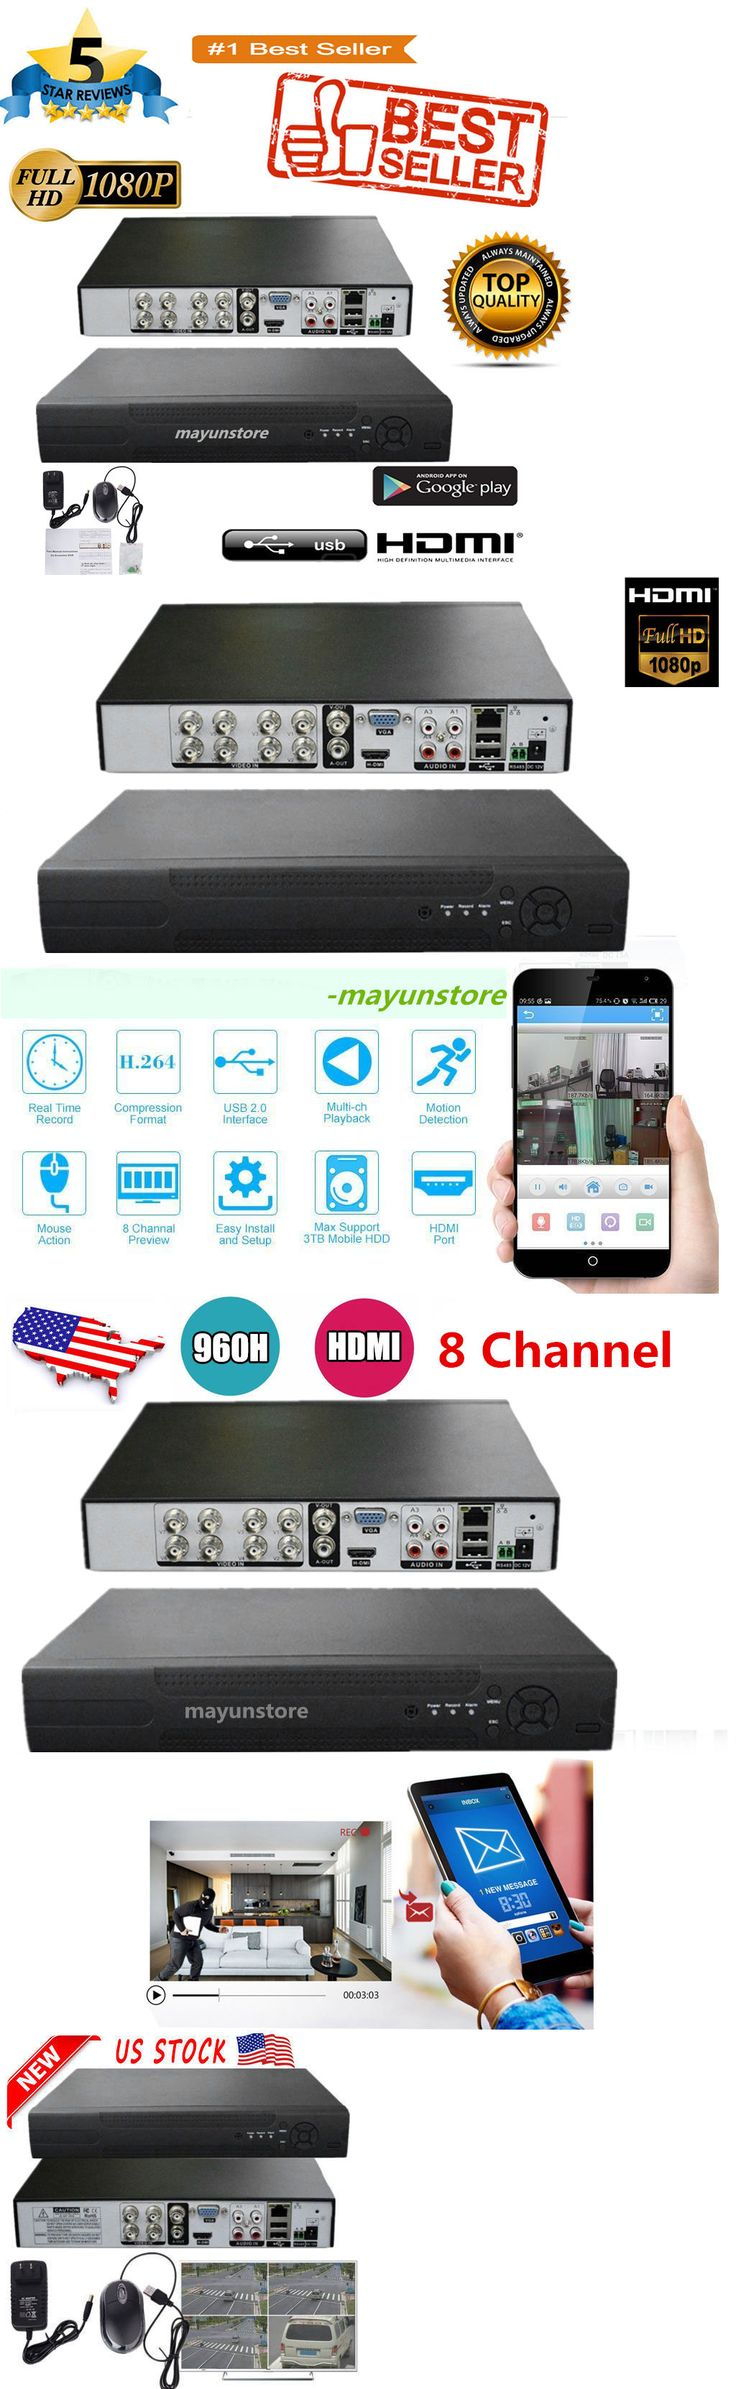 Digital Video Recorders Cards: 8Ch H.264 D1+Hdmi Digital Video Recorder Network For Home Cctv Security Camera BUY IT NOW ONLY: $32.79